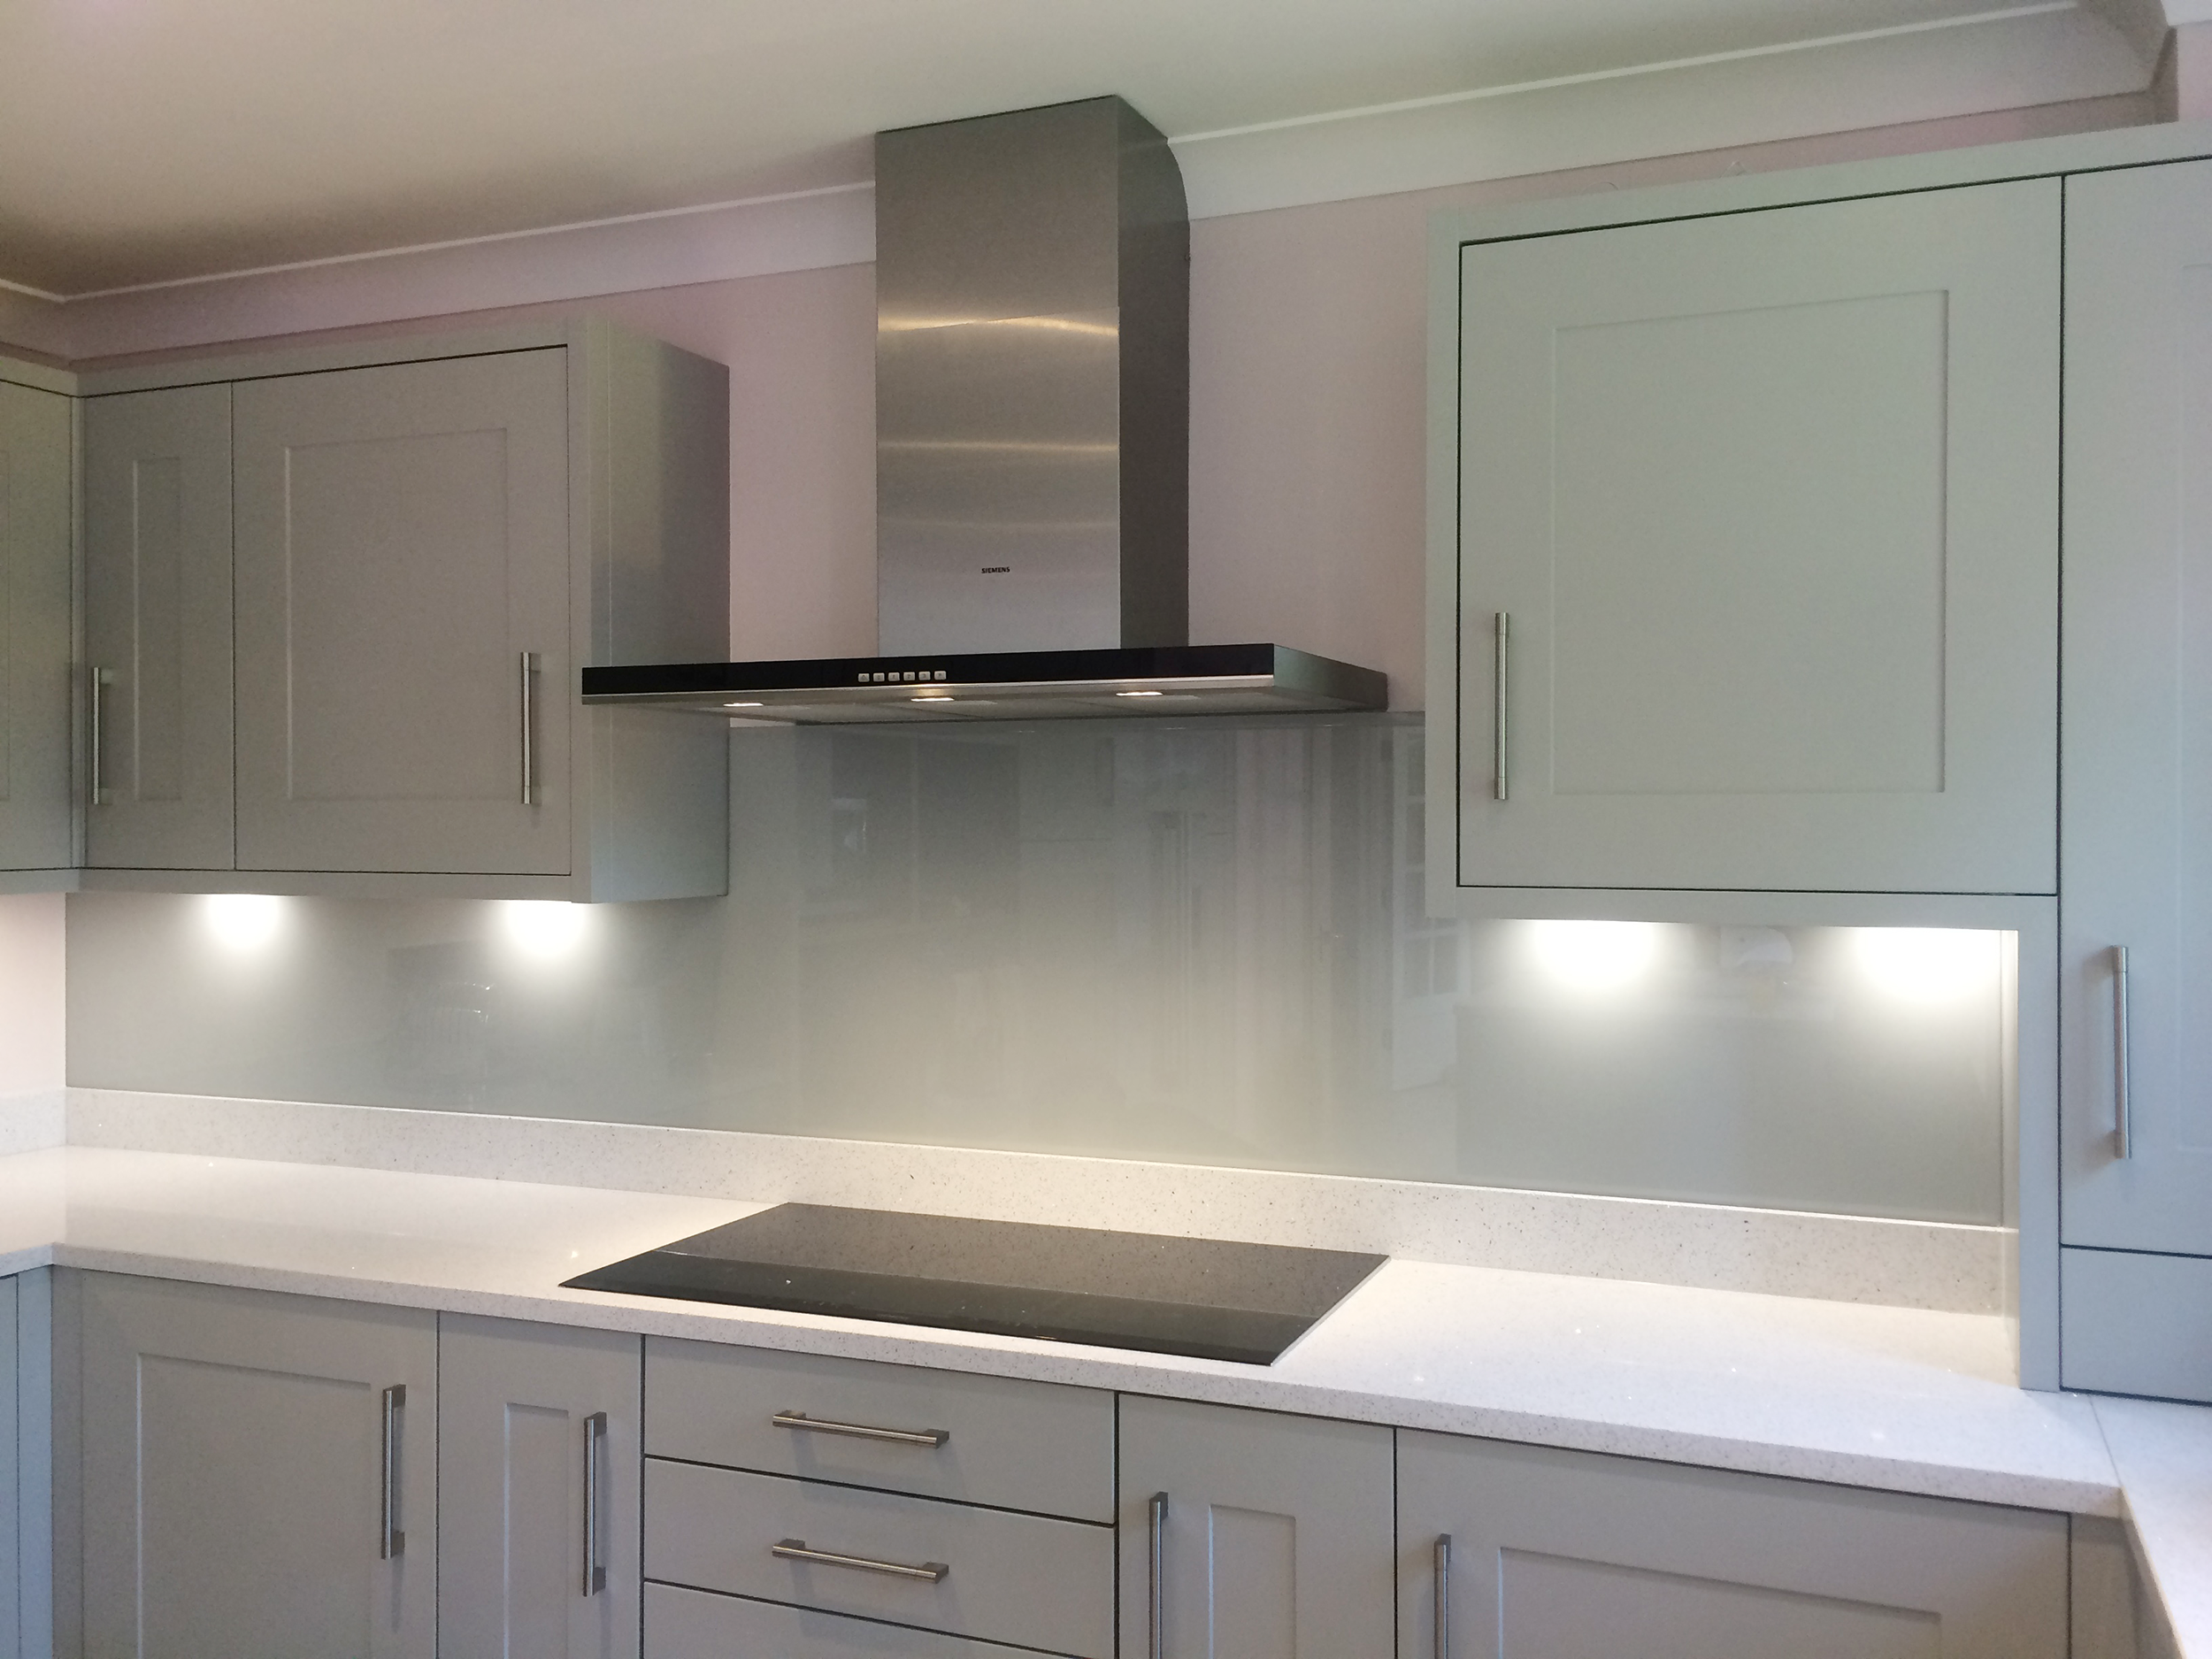 Dove Grey Glass Splashback Combined In A Kitchen With Light Coloured  Cupboards. Glass Splashbacks Produced By Opticolour.co.uk